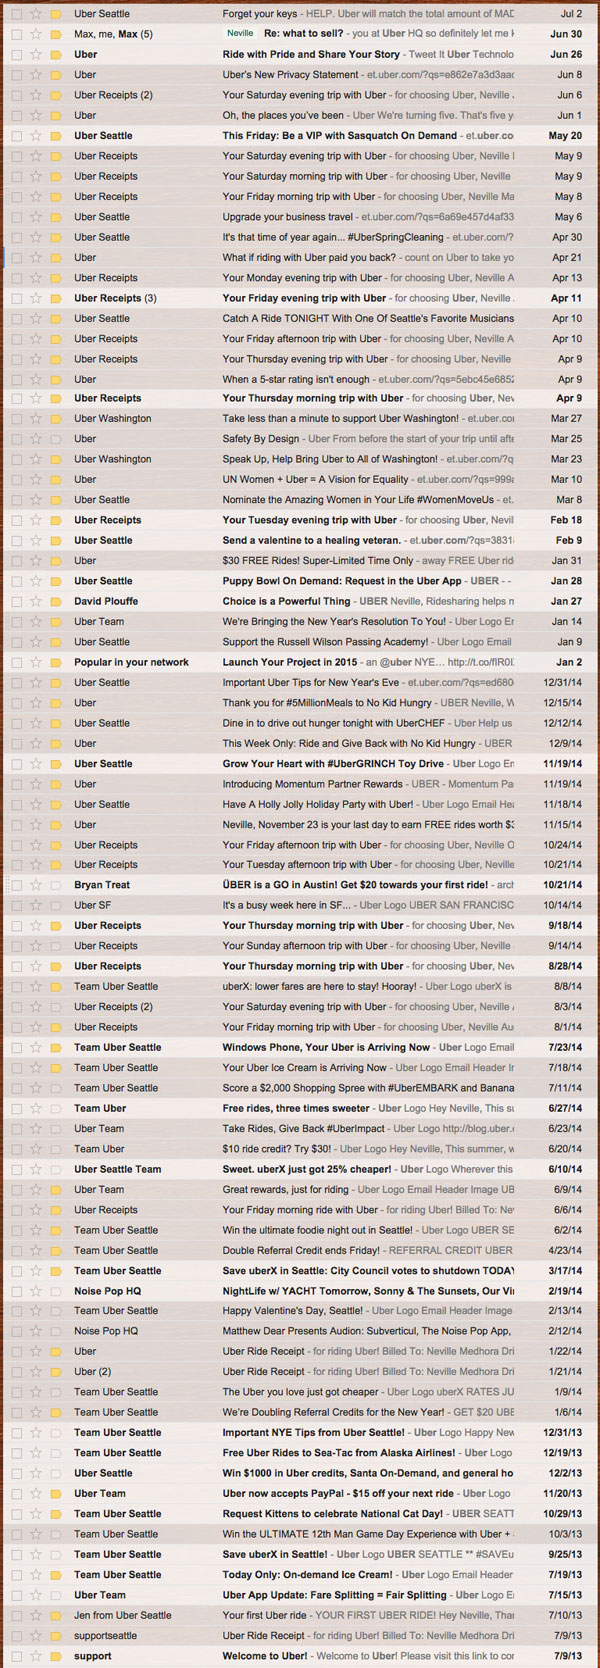 Uber email frequency